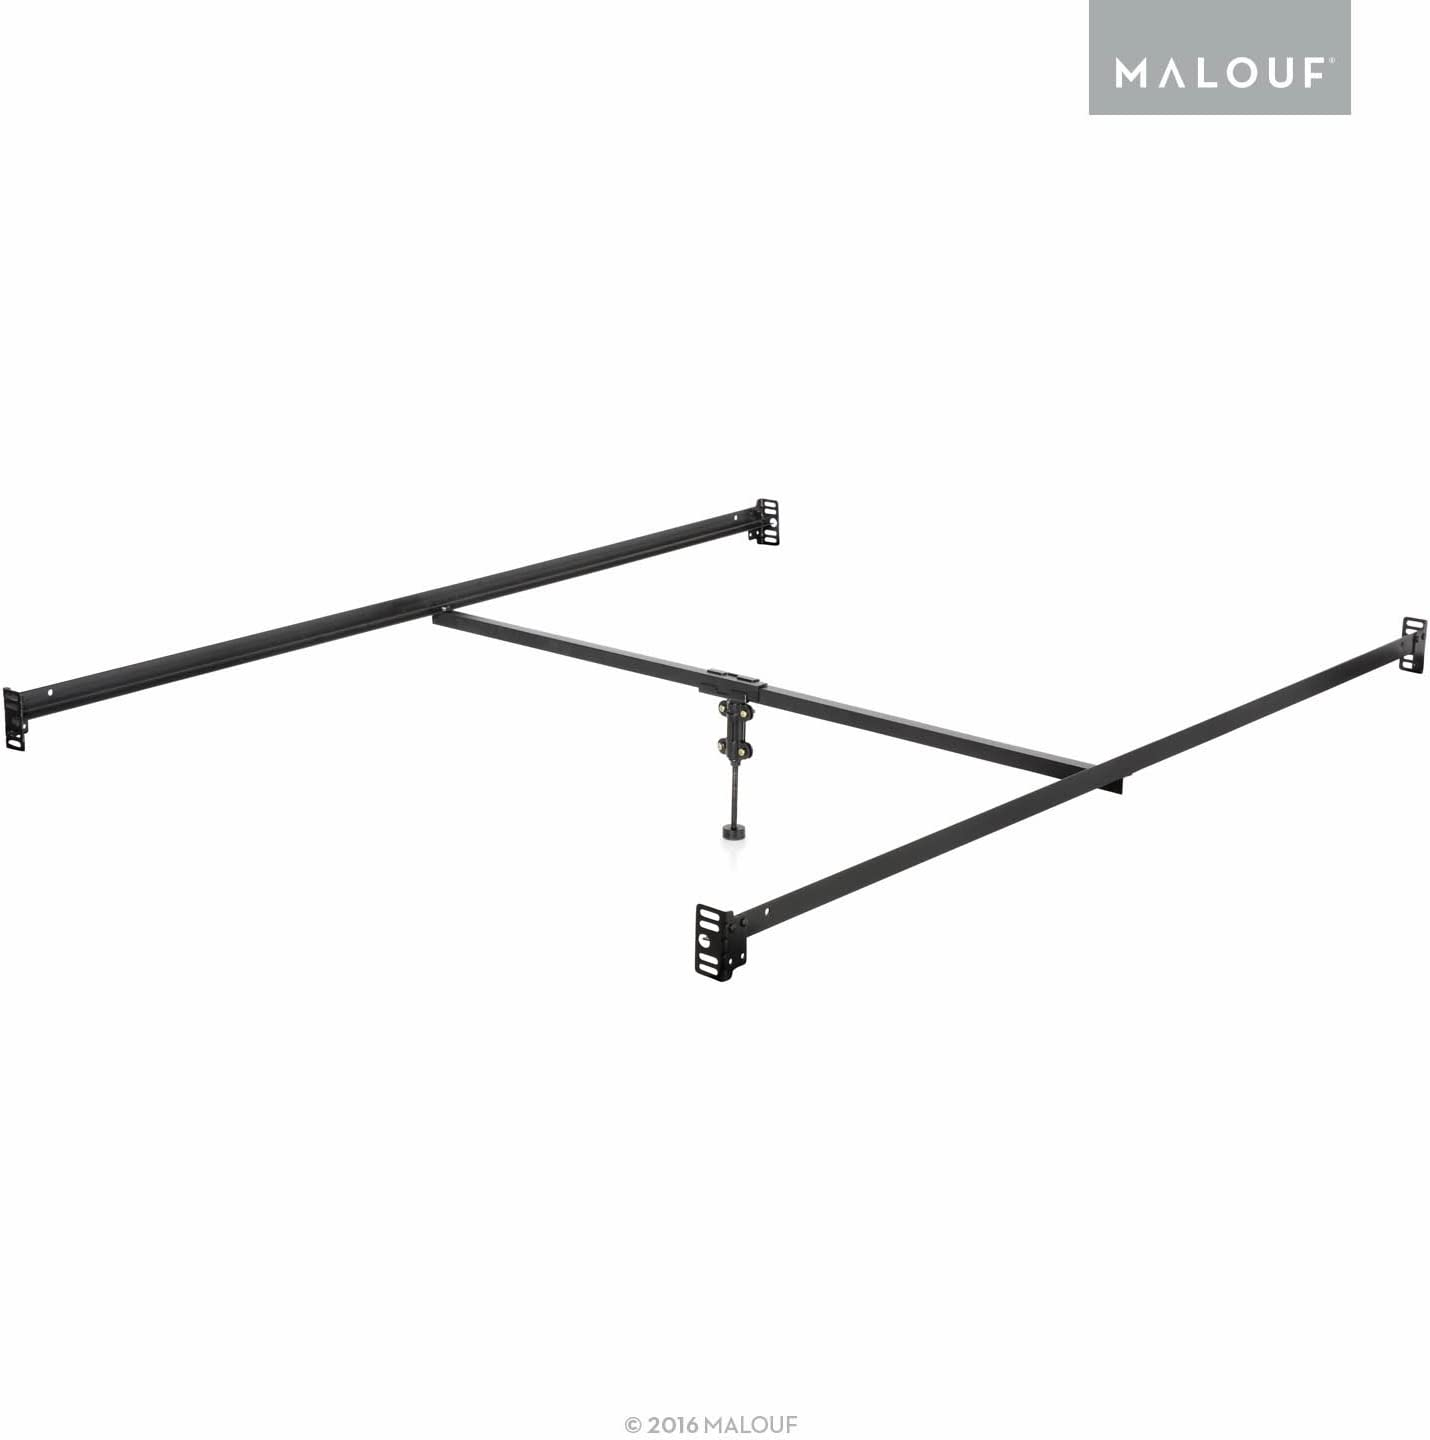 MALOUF Structures Bolt-on Metal Bed Rail System with Center Support Bar and Adjustable Height Leg, Queen, Black